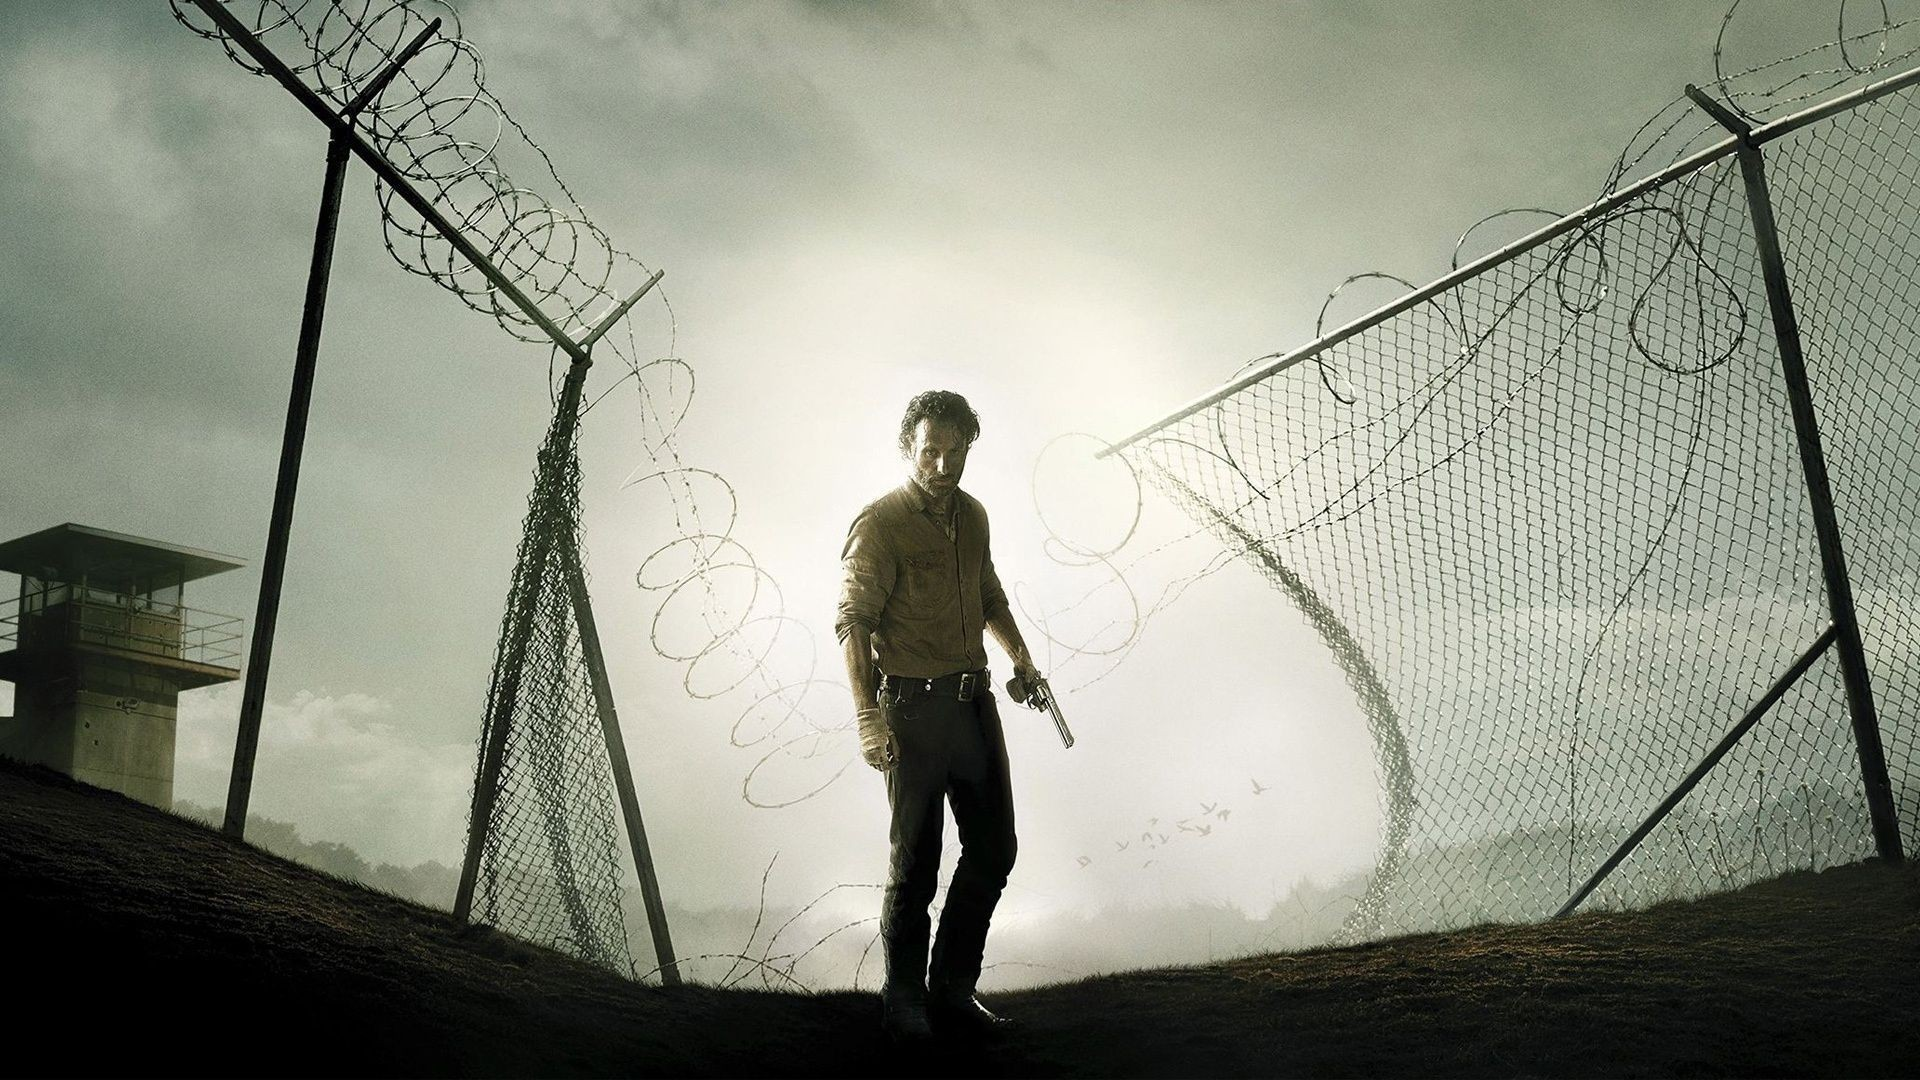 the walking dead wallpaper ·① download free stunning backgrounds